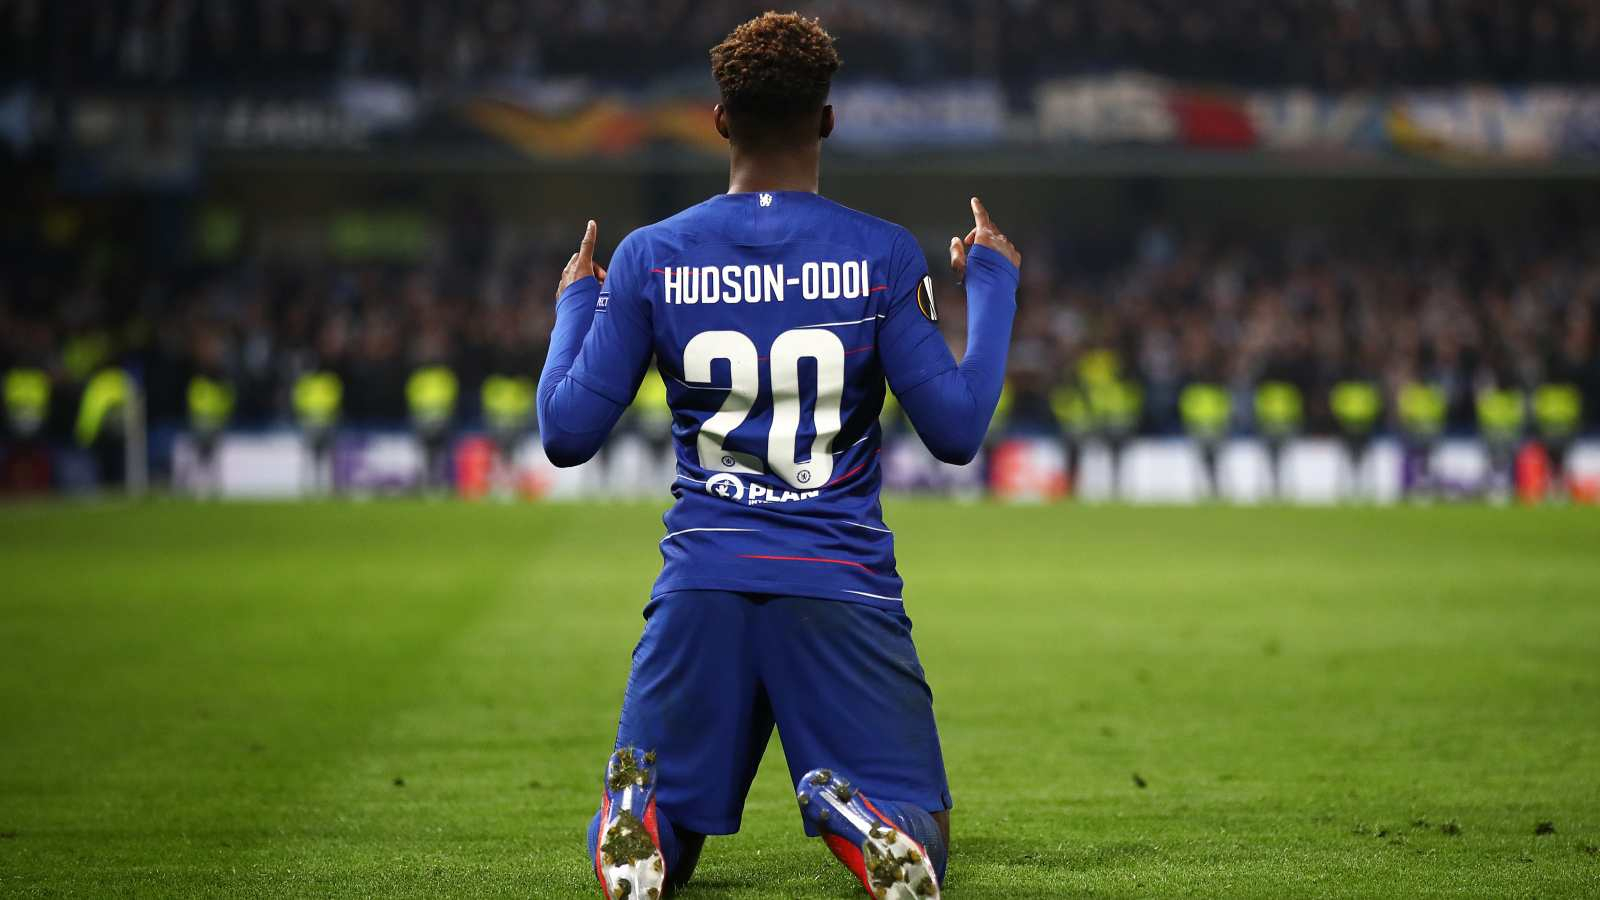 Hudson-Odoi set to leave Chelsea for Bayern as part of Lampard's squad reshuffle